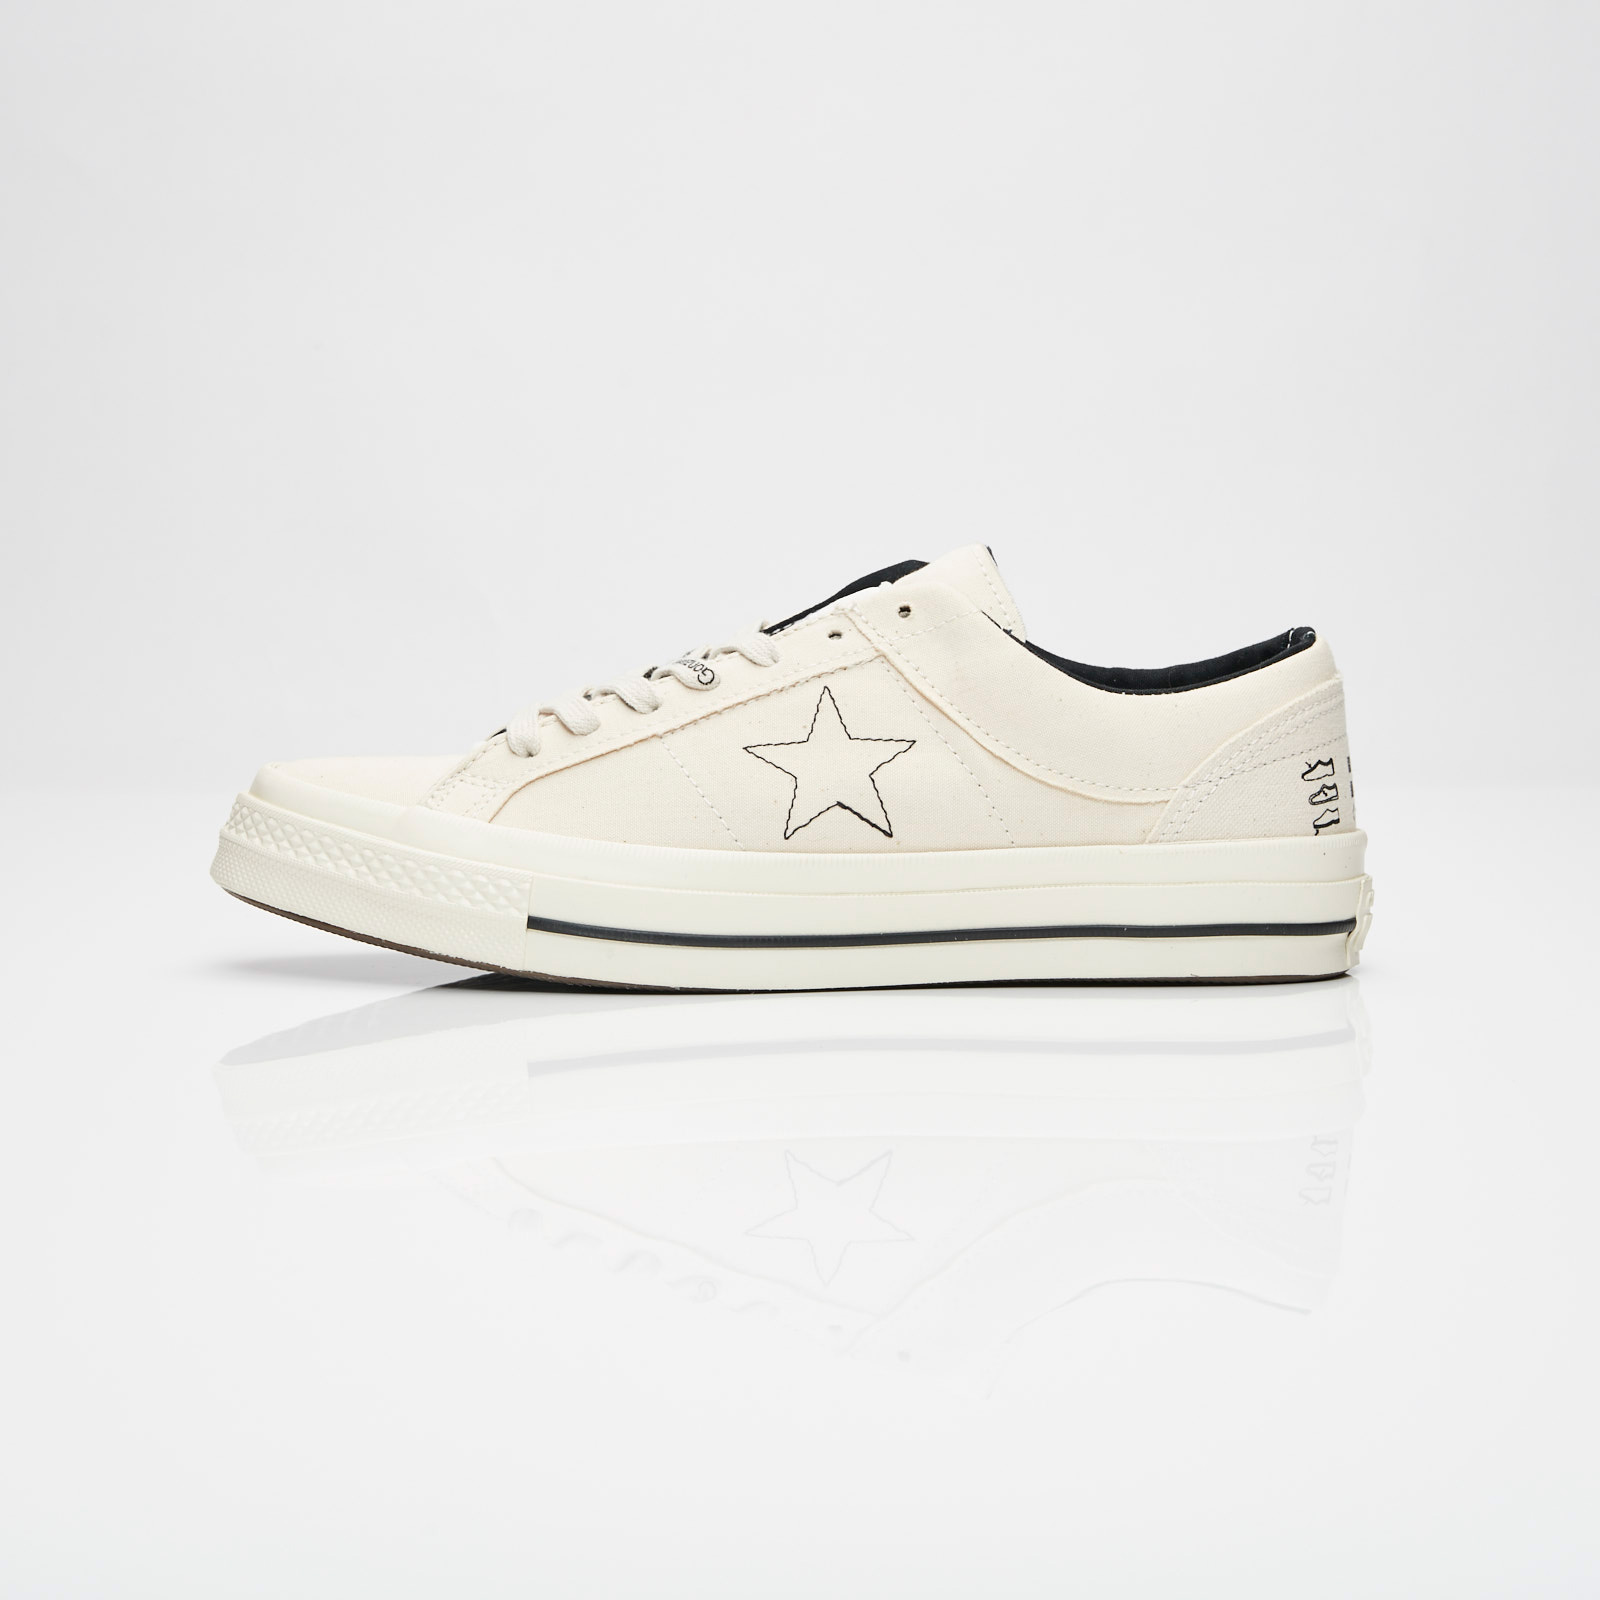 Converse One Star x Midnight Studio - 162124c - Sneakersnstuff ... 60cf02c4d